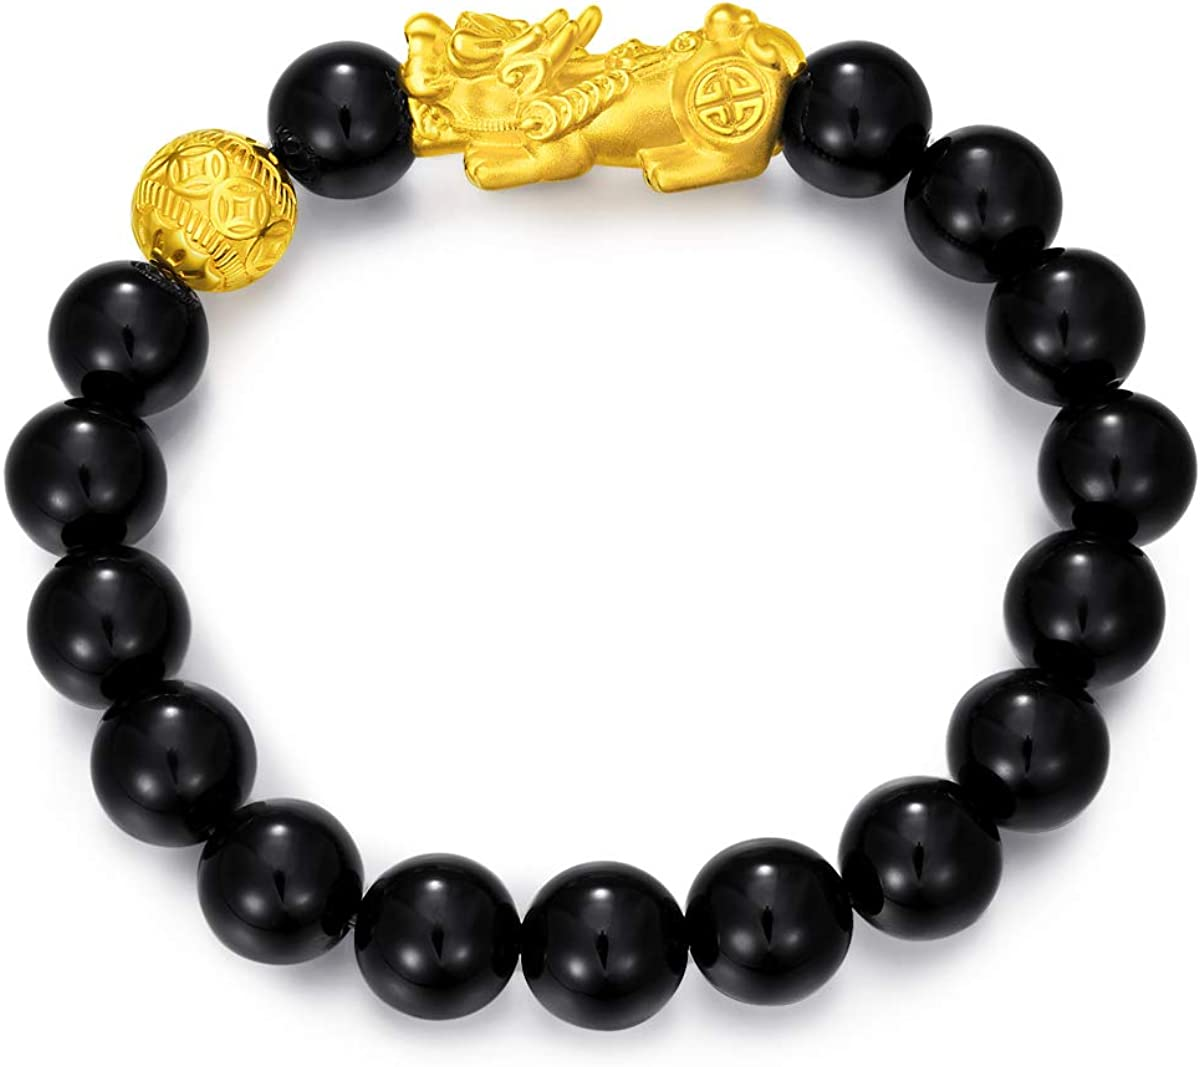 CHOW TAI FOOK 999 24K Gold Large Portland Mall Pixiu Charm Br Translated Fortune Ball and